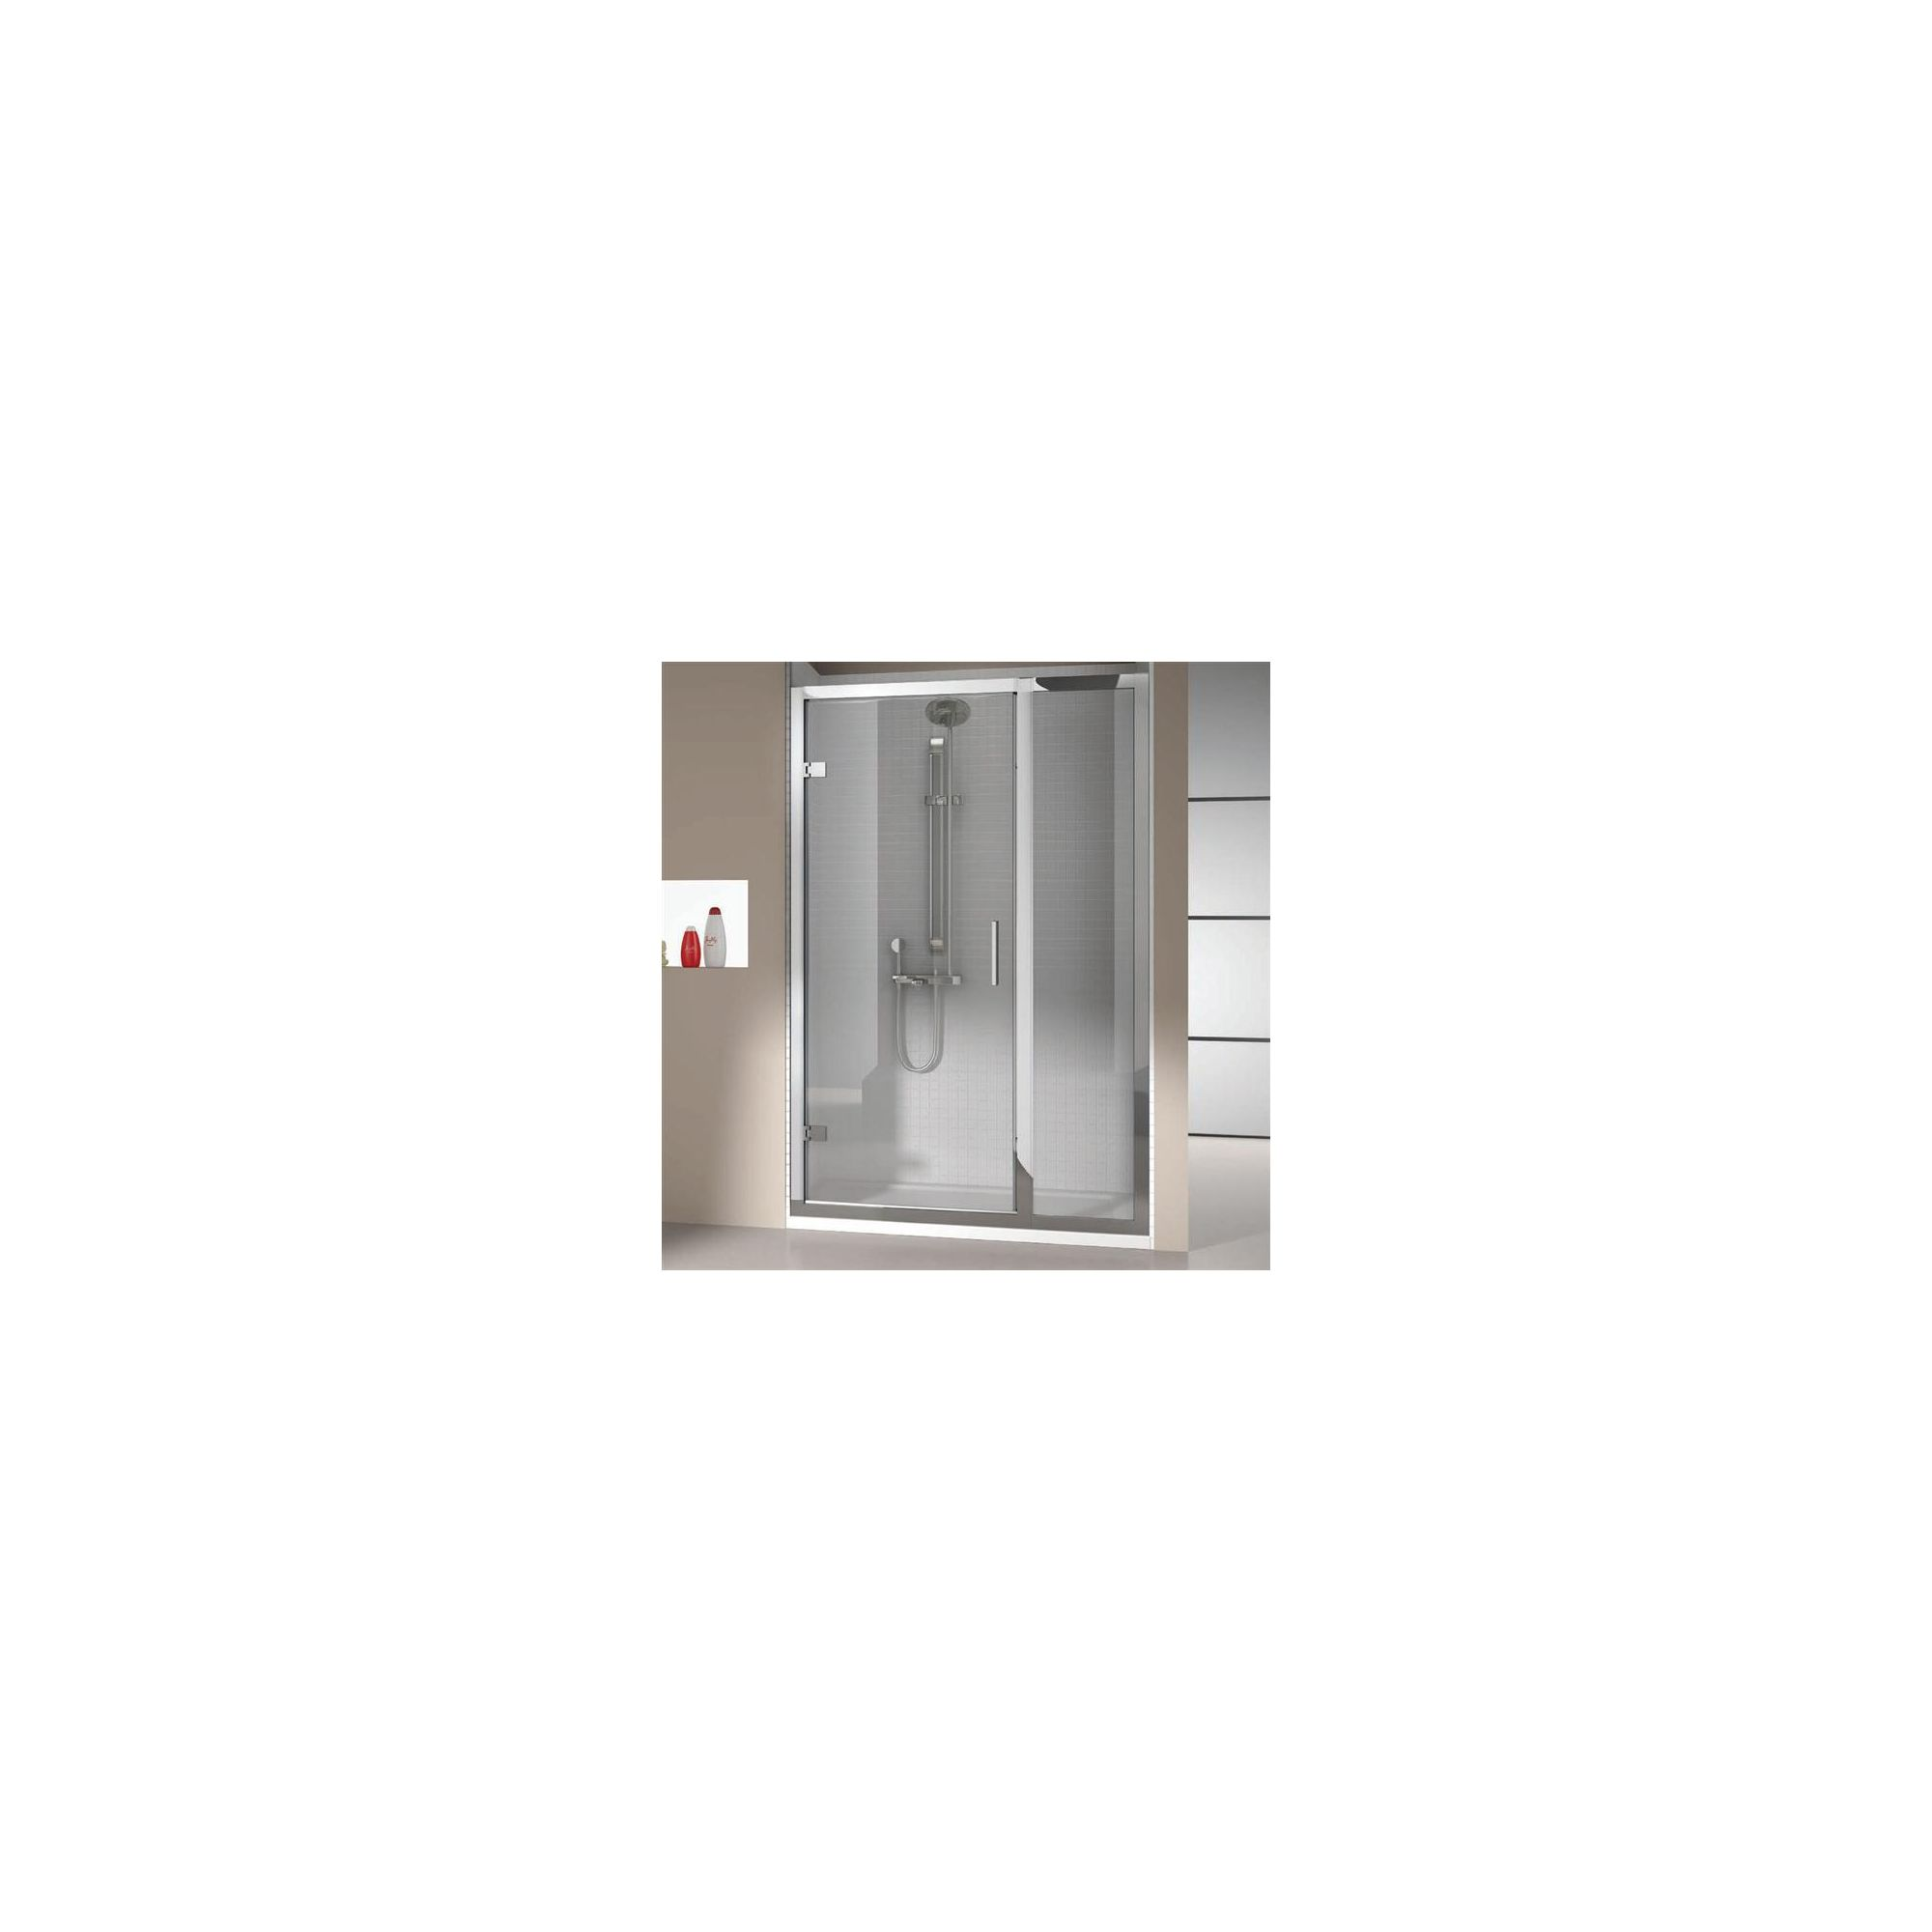 Merlyn Vivid Eight Hinged Shower Door Enclosure with Inline Panel 1400mm x 900mm (including Merlyte Tray) at Tesco Direct